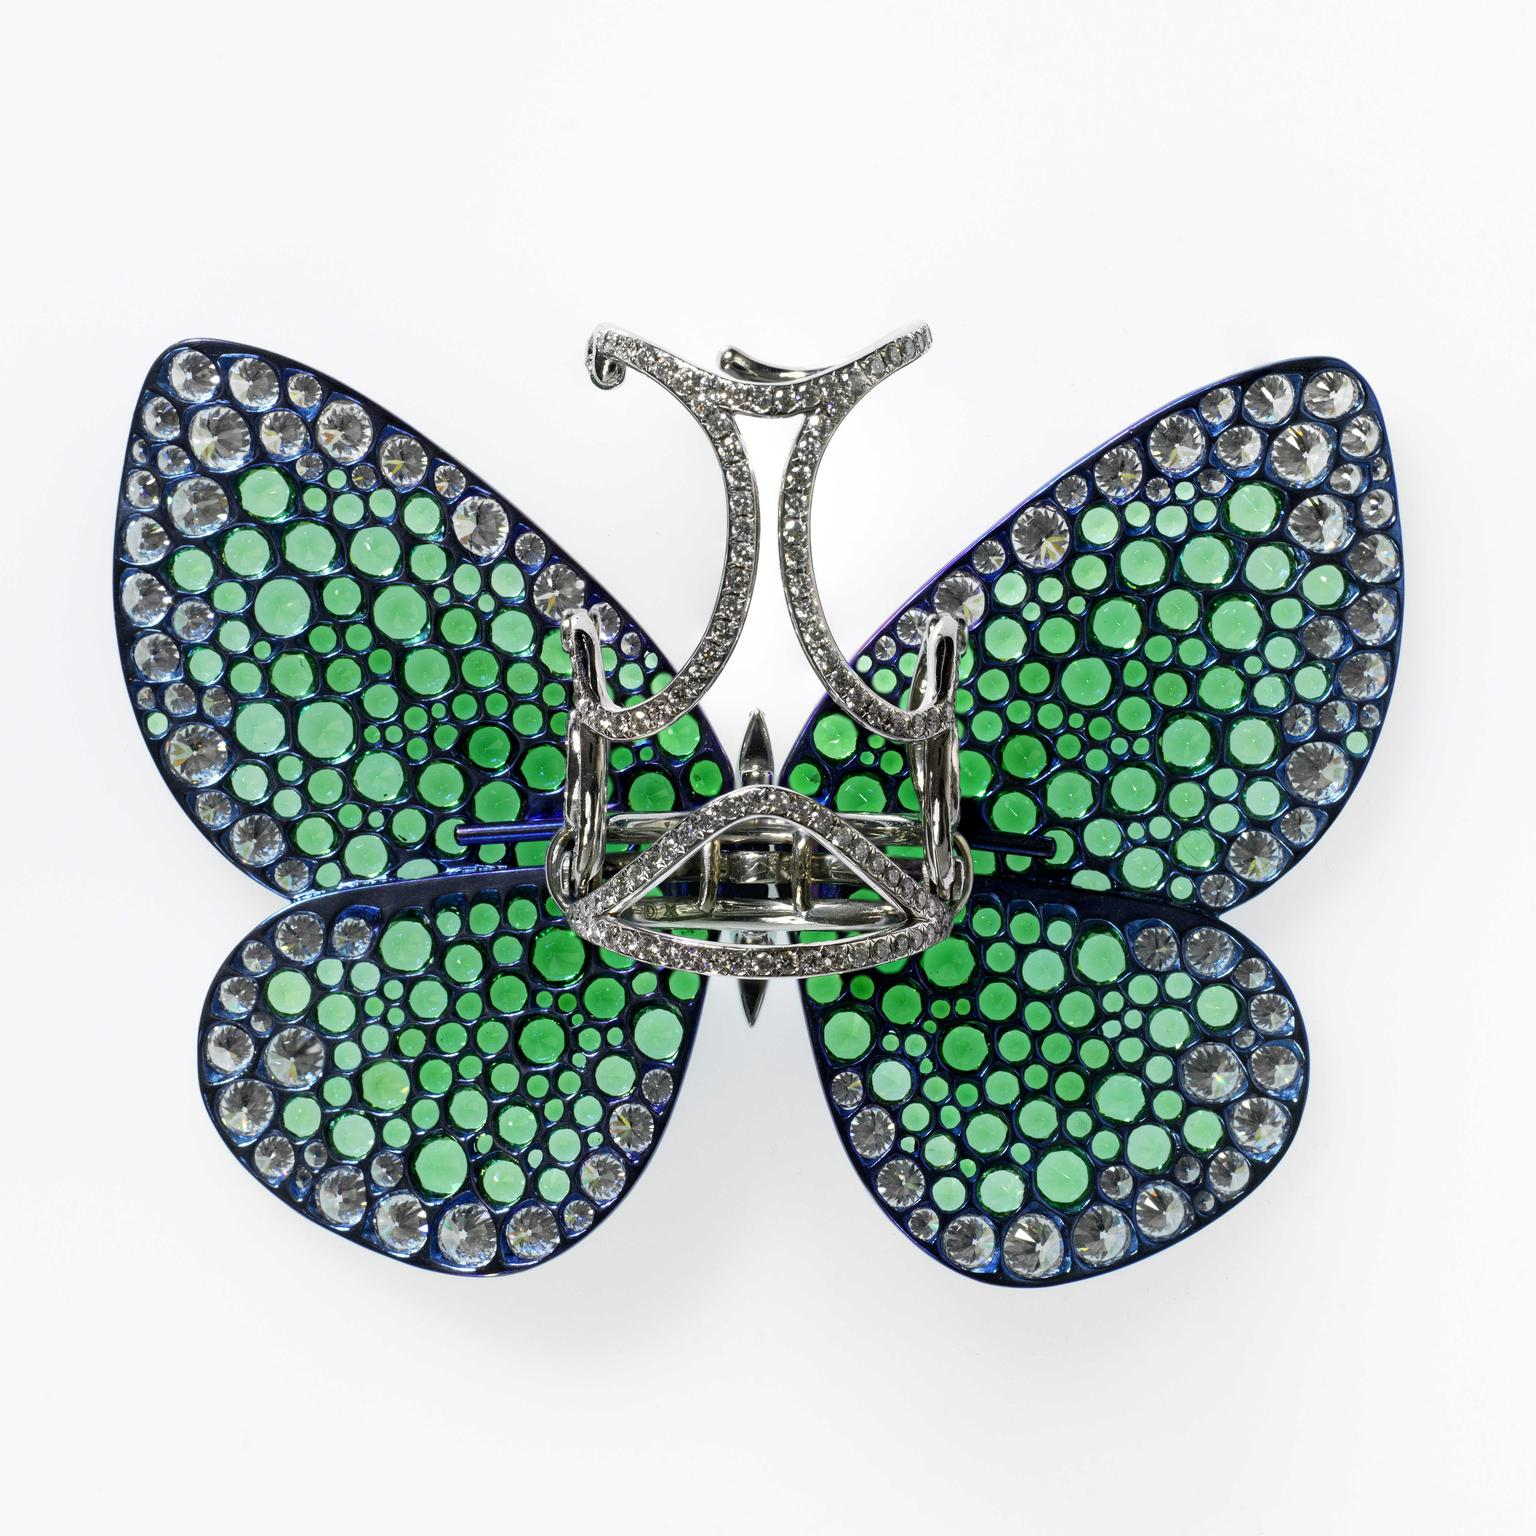 Reverse-side view of the Papillon ring by G Glenn Spiro that Beyonce has donated to V and A museum in London